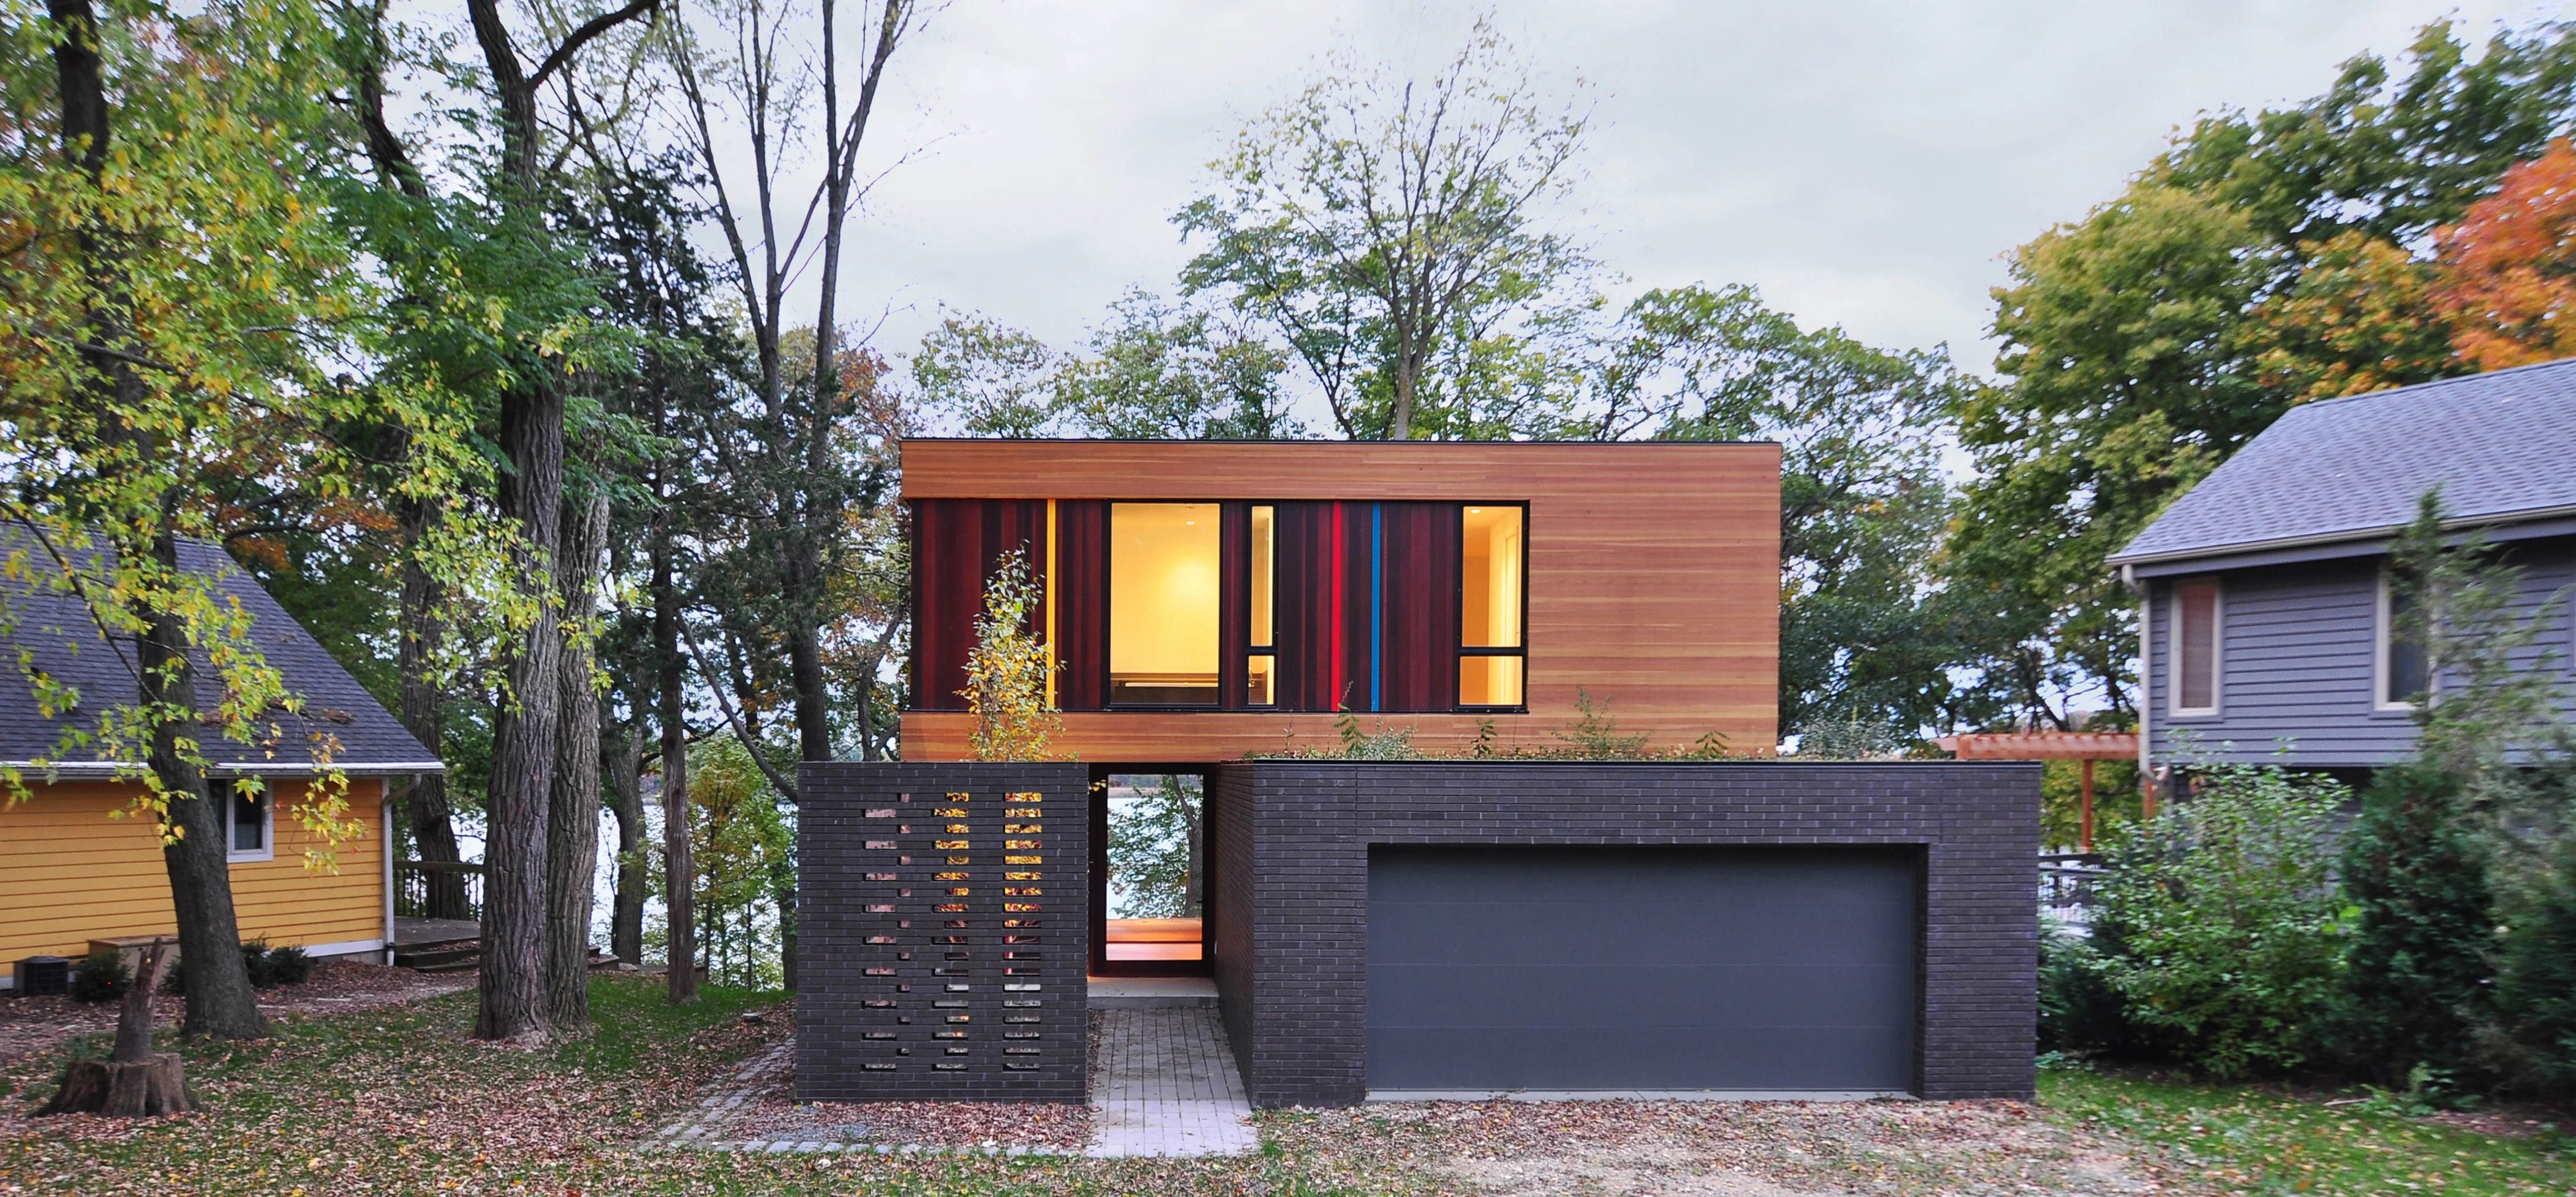 These Five Amazing Houses Just Won Awards For Being Small And